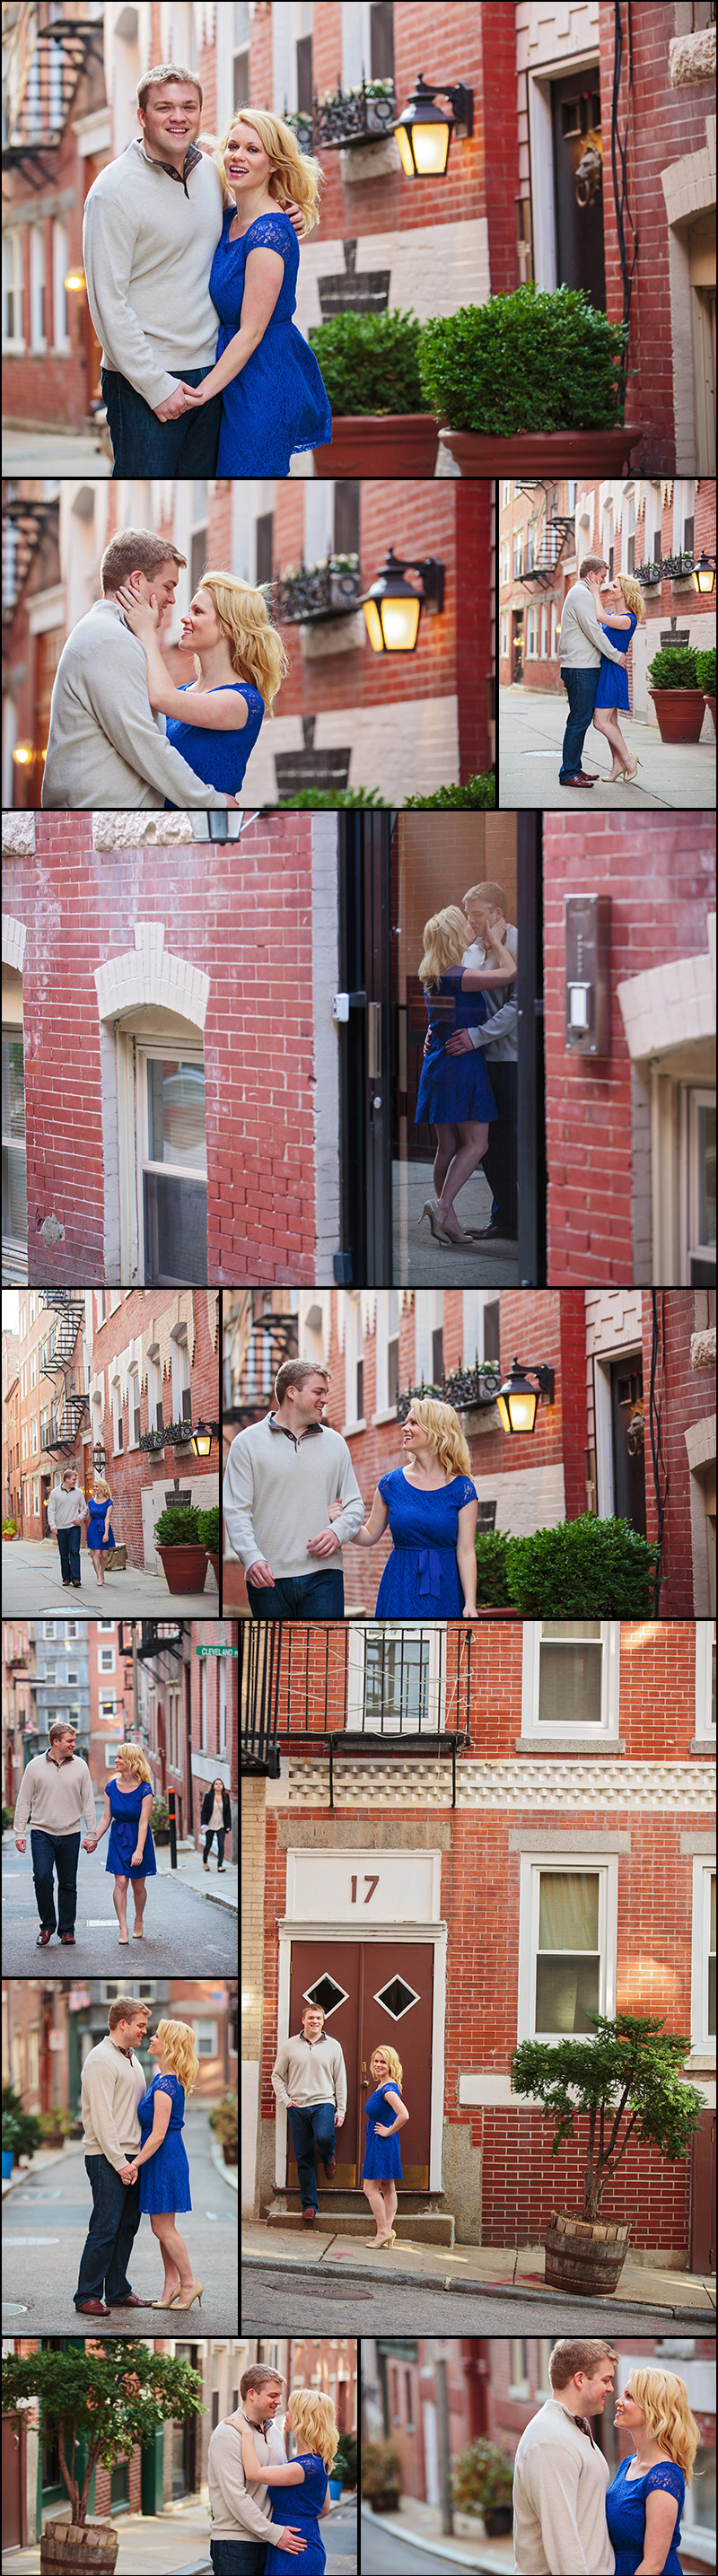 NEW ENGLAND WEDDING PHOTOGRAPHER NORTH END BOSTON